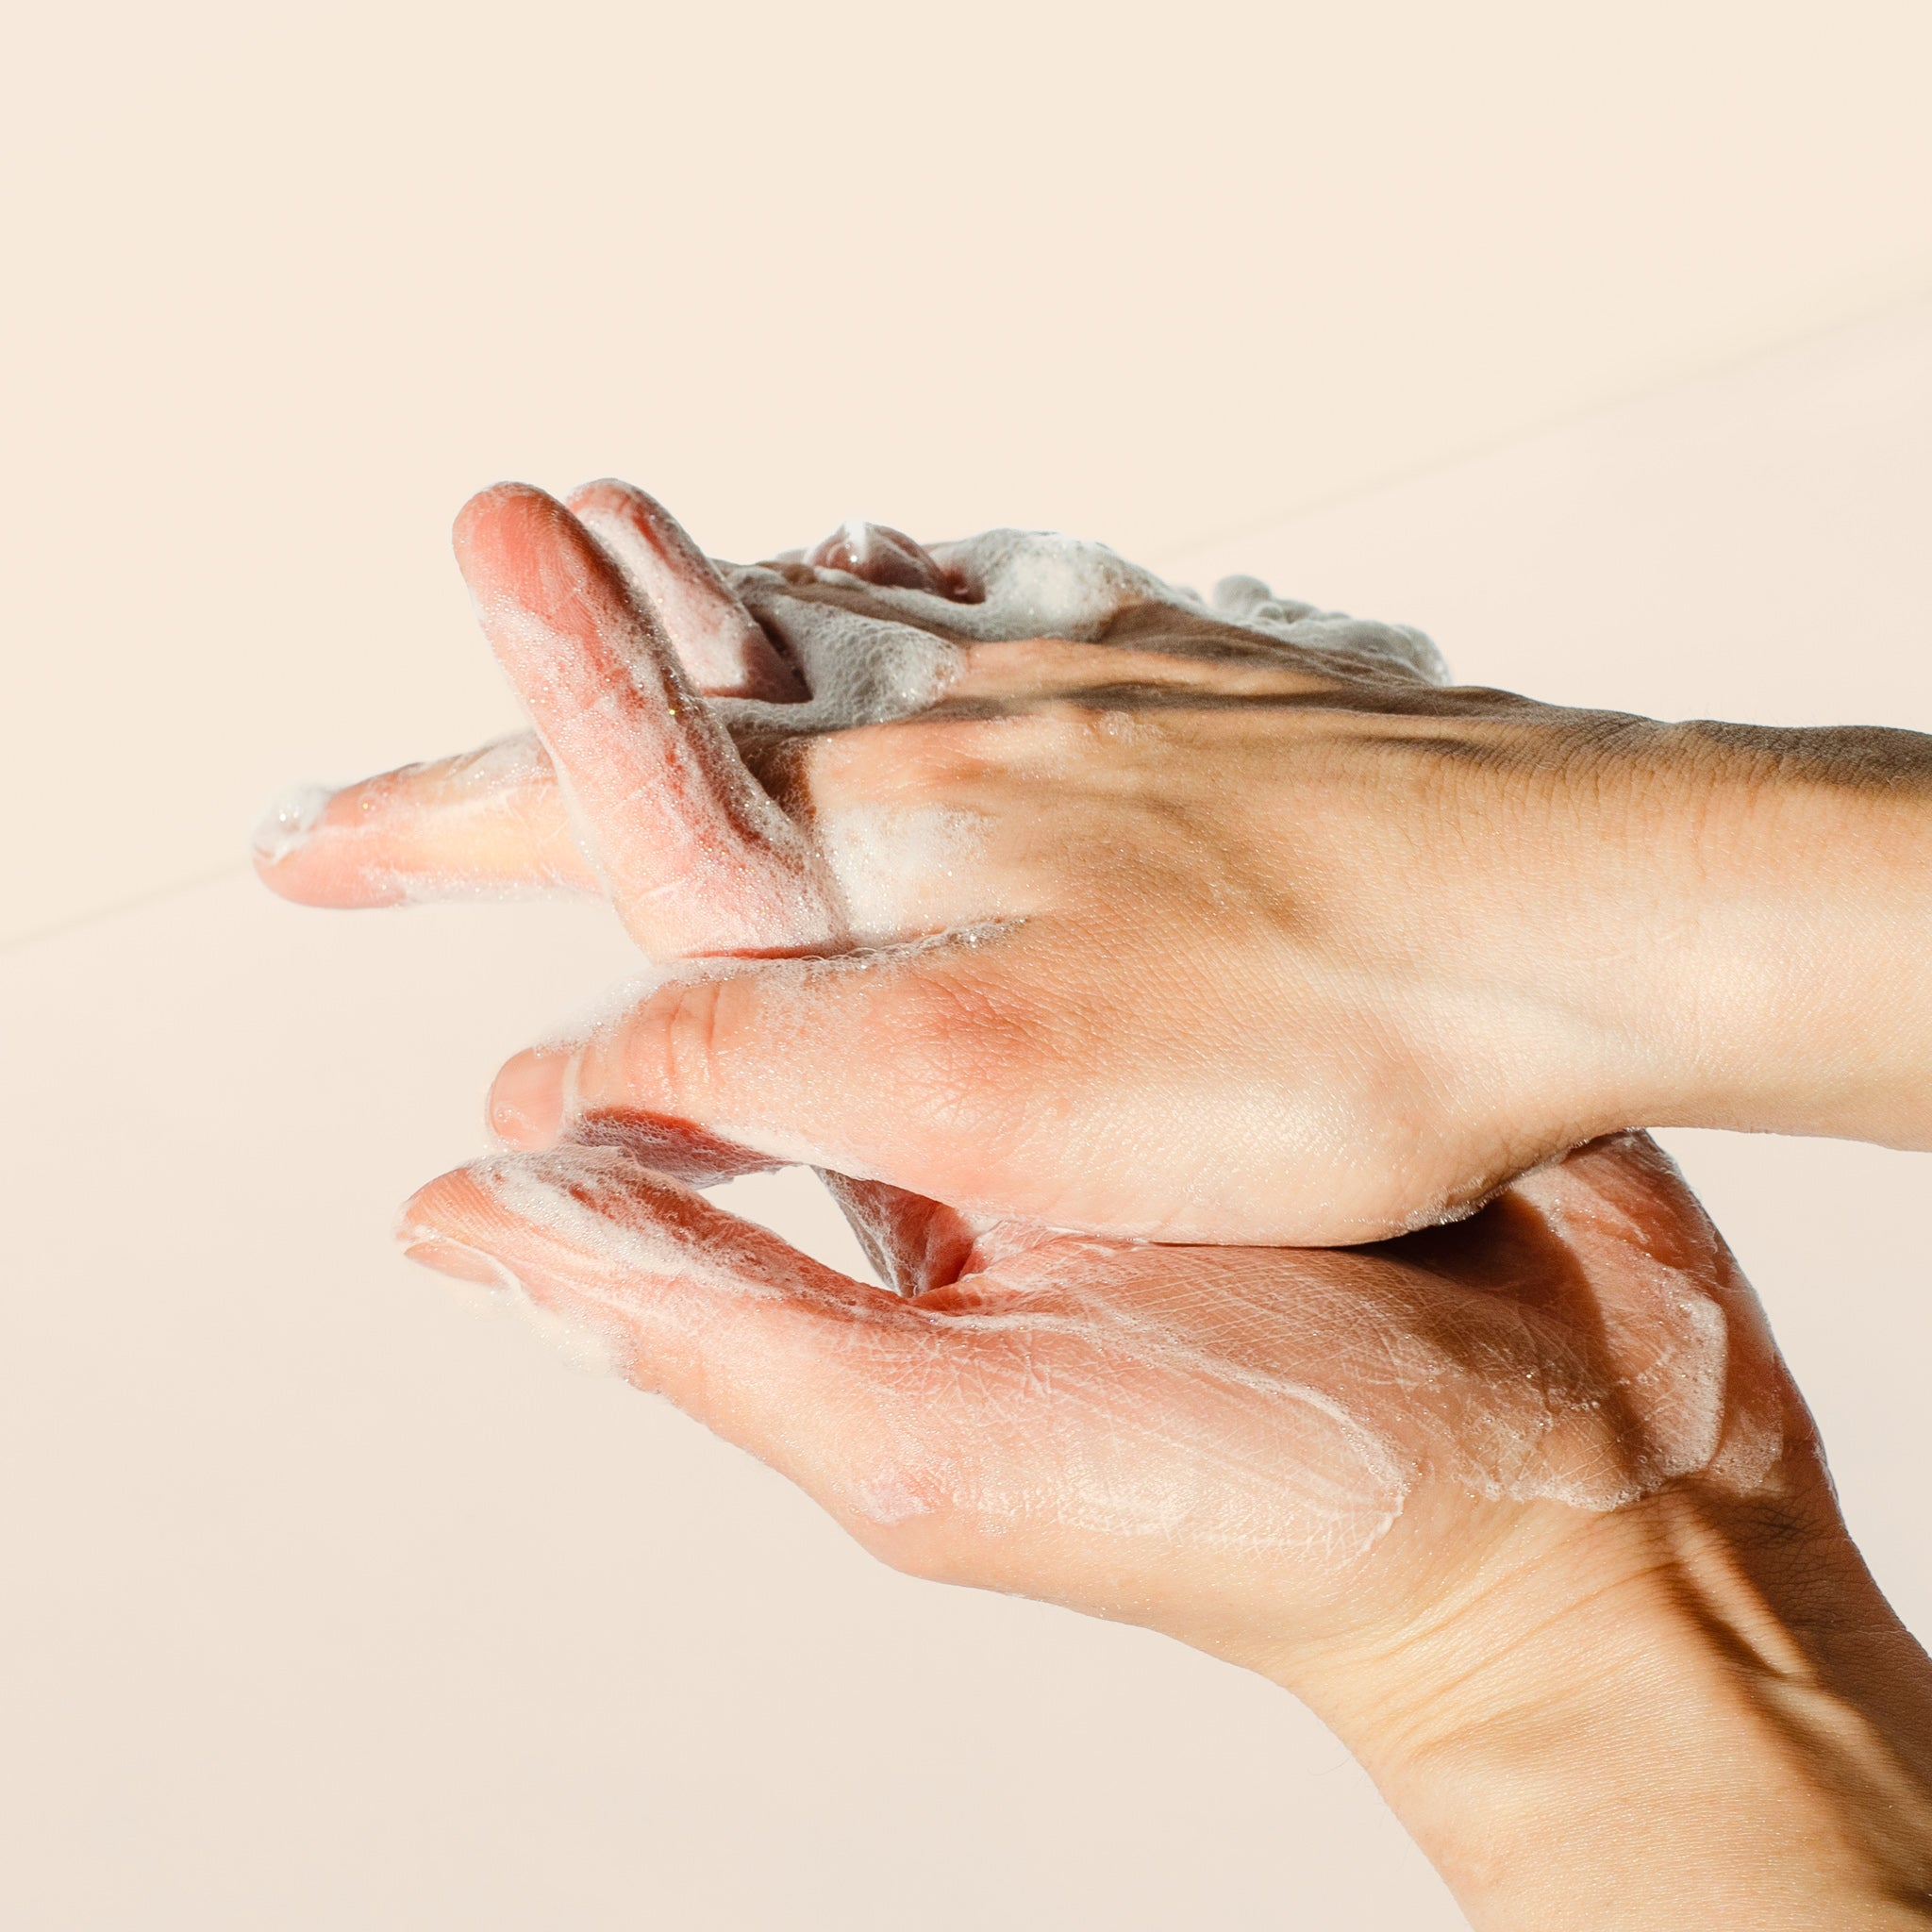 Image of hands washing with lather all natural liquid soap.